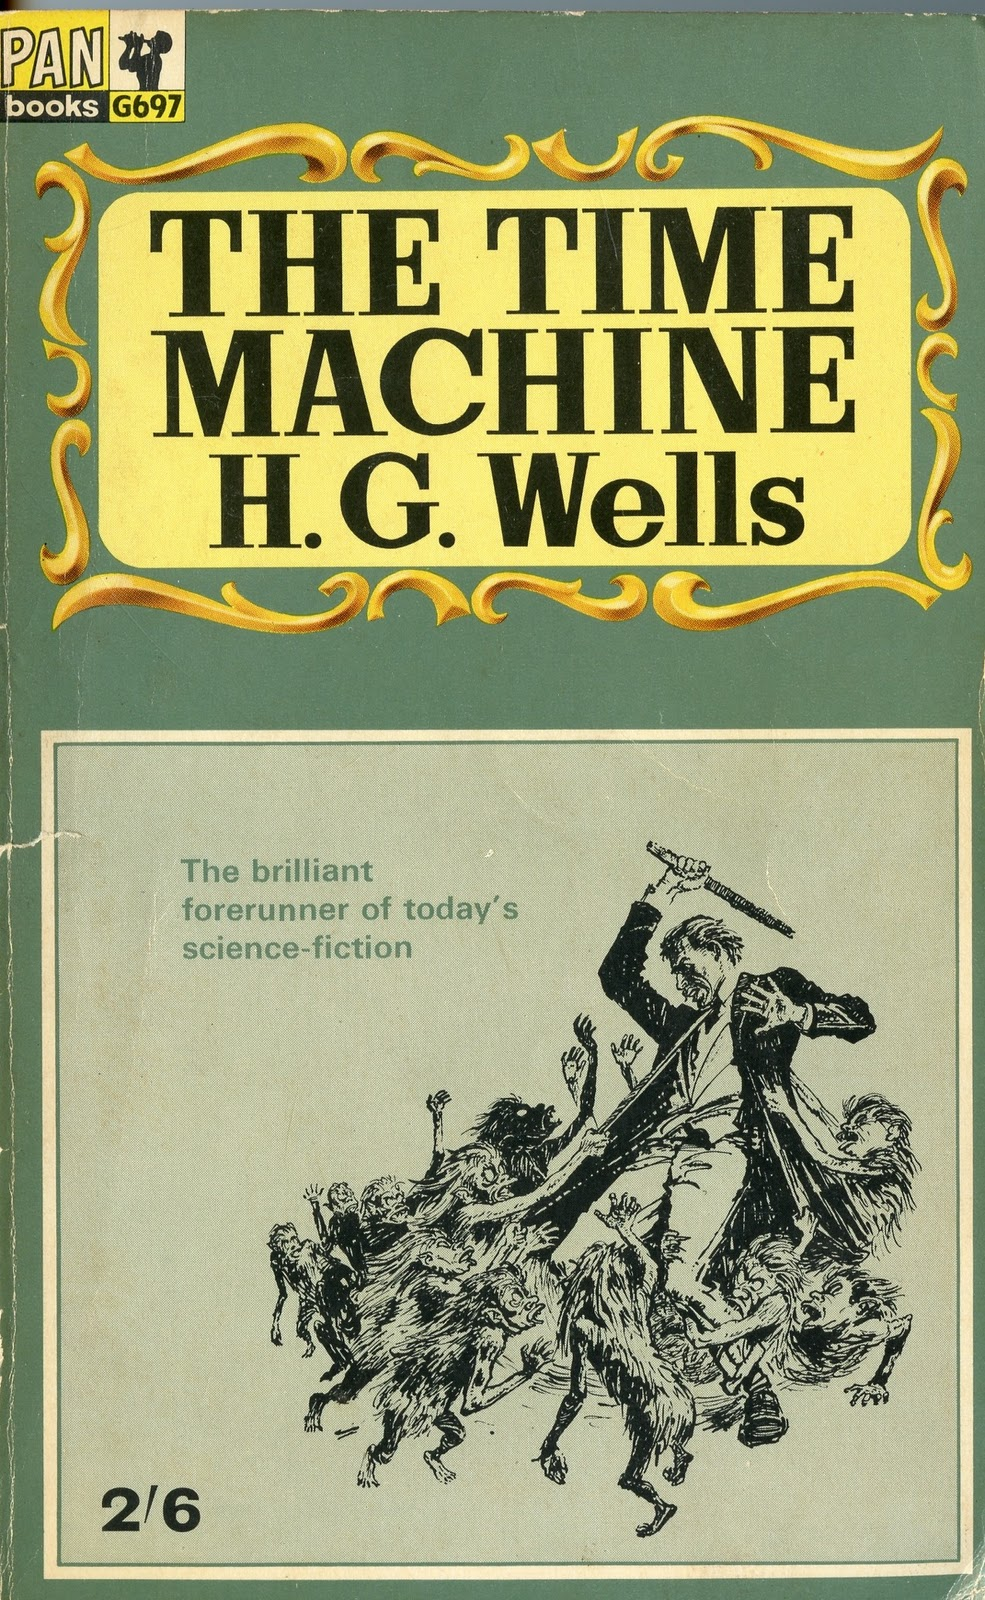 a review of the time machine by hg wells